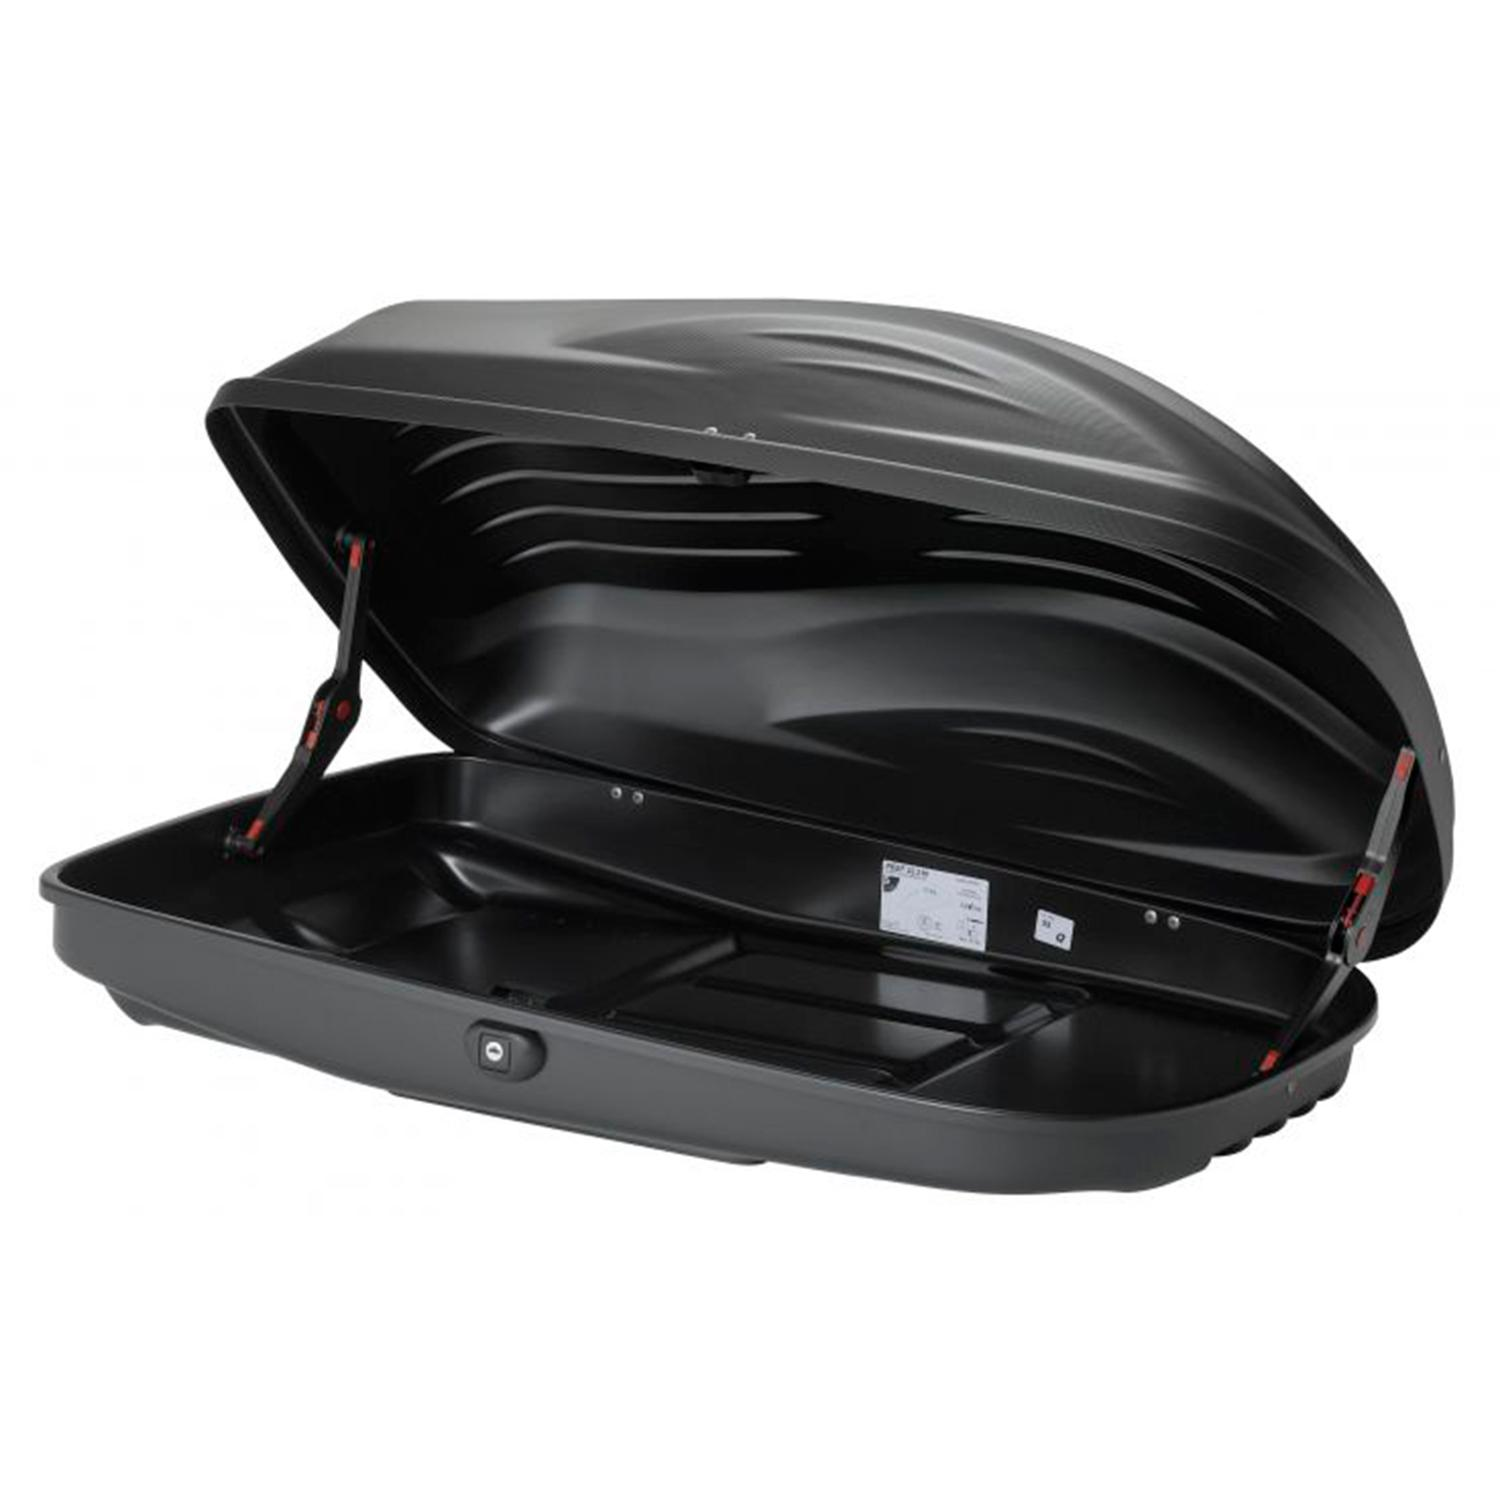 Roof box G3 22210 rating